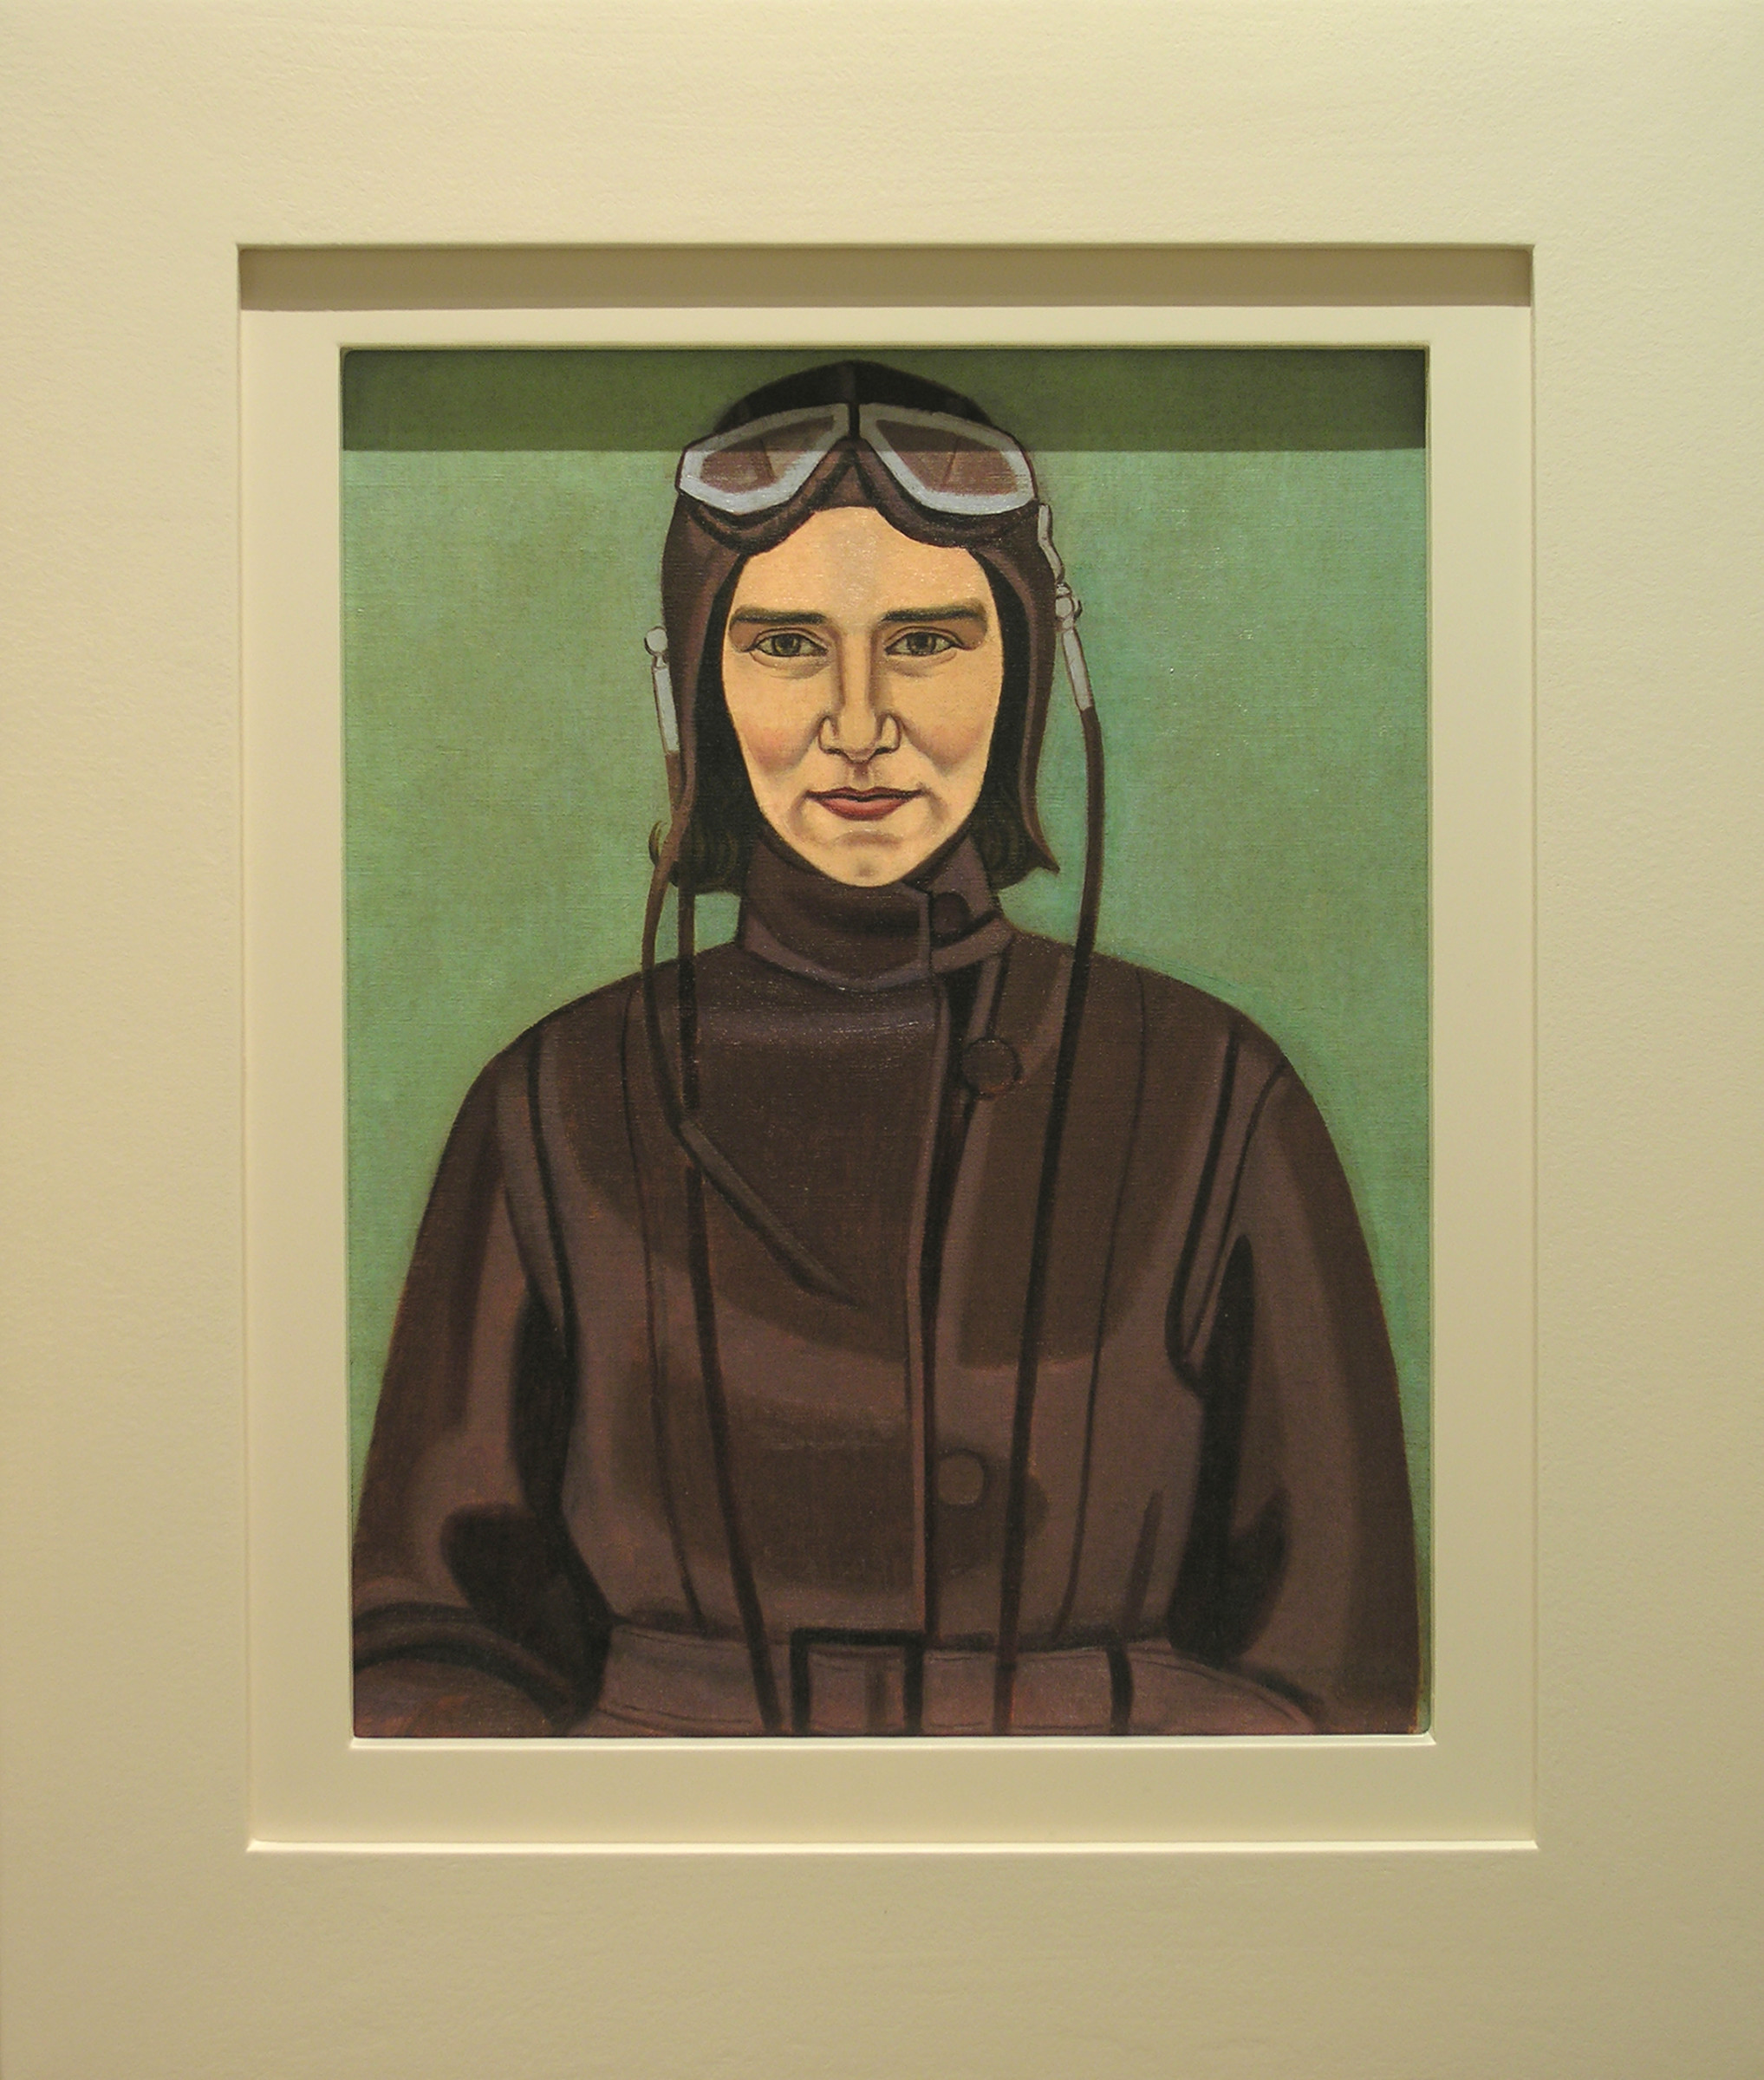 <span class=&#34;link fancybox-details-link&#34;><a href=&#34;/artists/70-rita-angus/works/2466-rita-angus-the-aviatrix-1933/&#34;>View Detail Page</a></span><div class=&#34;artist&#34;><strong>Rita Angus</strong></div> <div class=&#34;title&#34;><em>The Aviatrix</em>, 1933</div> <div class=&#34;signed_and_dated&#34;>Signed and dated lower right</div> <div class=&#34;medium&#34;>Oil on canvas</div> <div class=&#34;dimensions&#34;>20.9 x 17.7 in<br />53 x 45 cm</div>